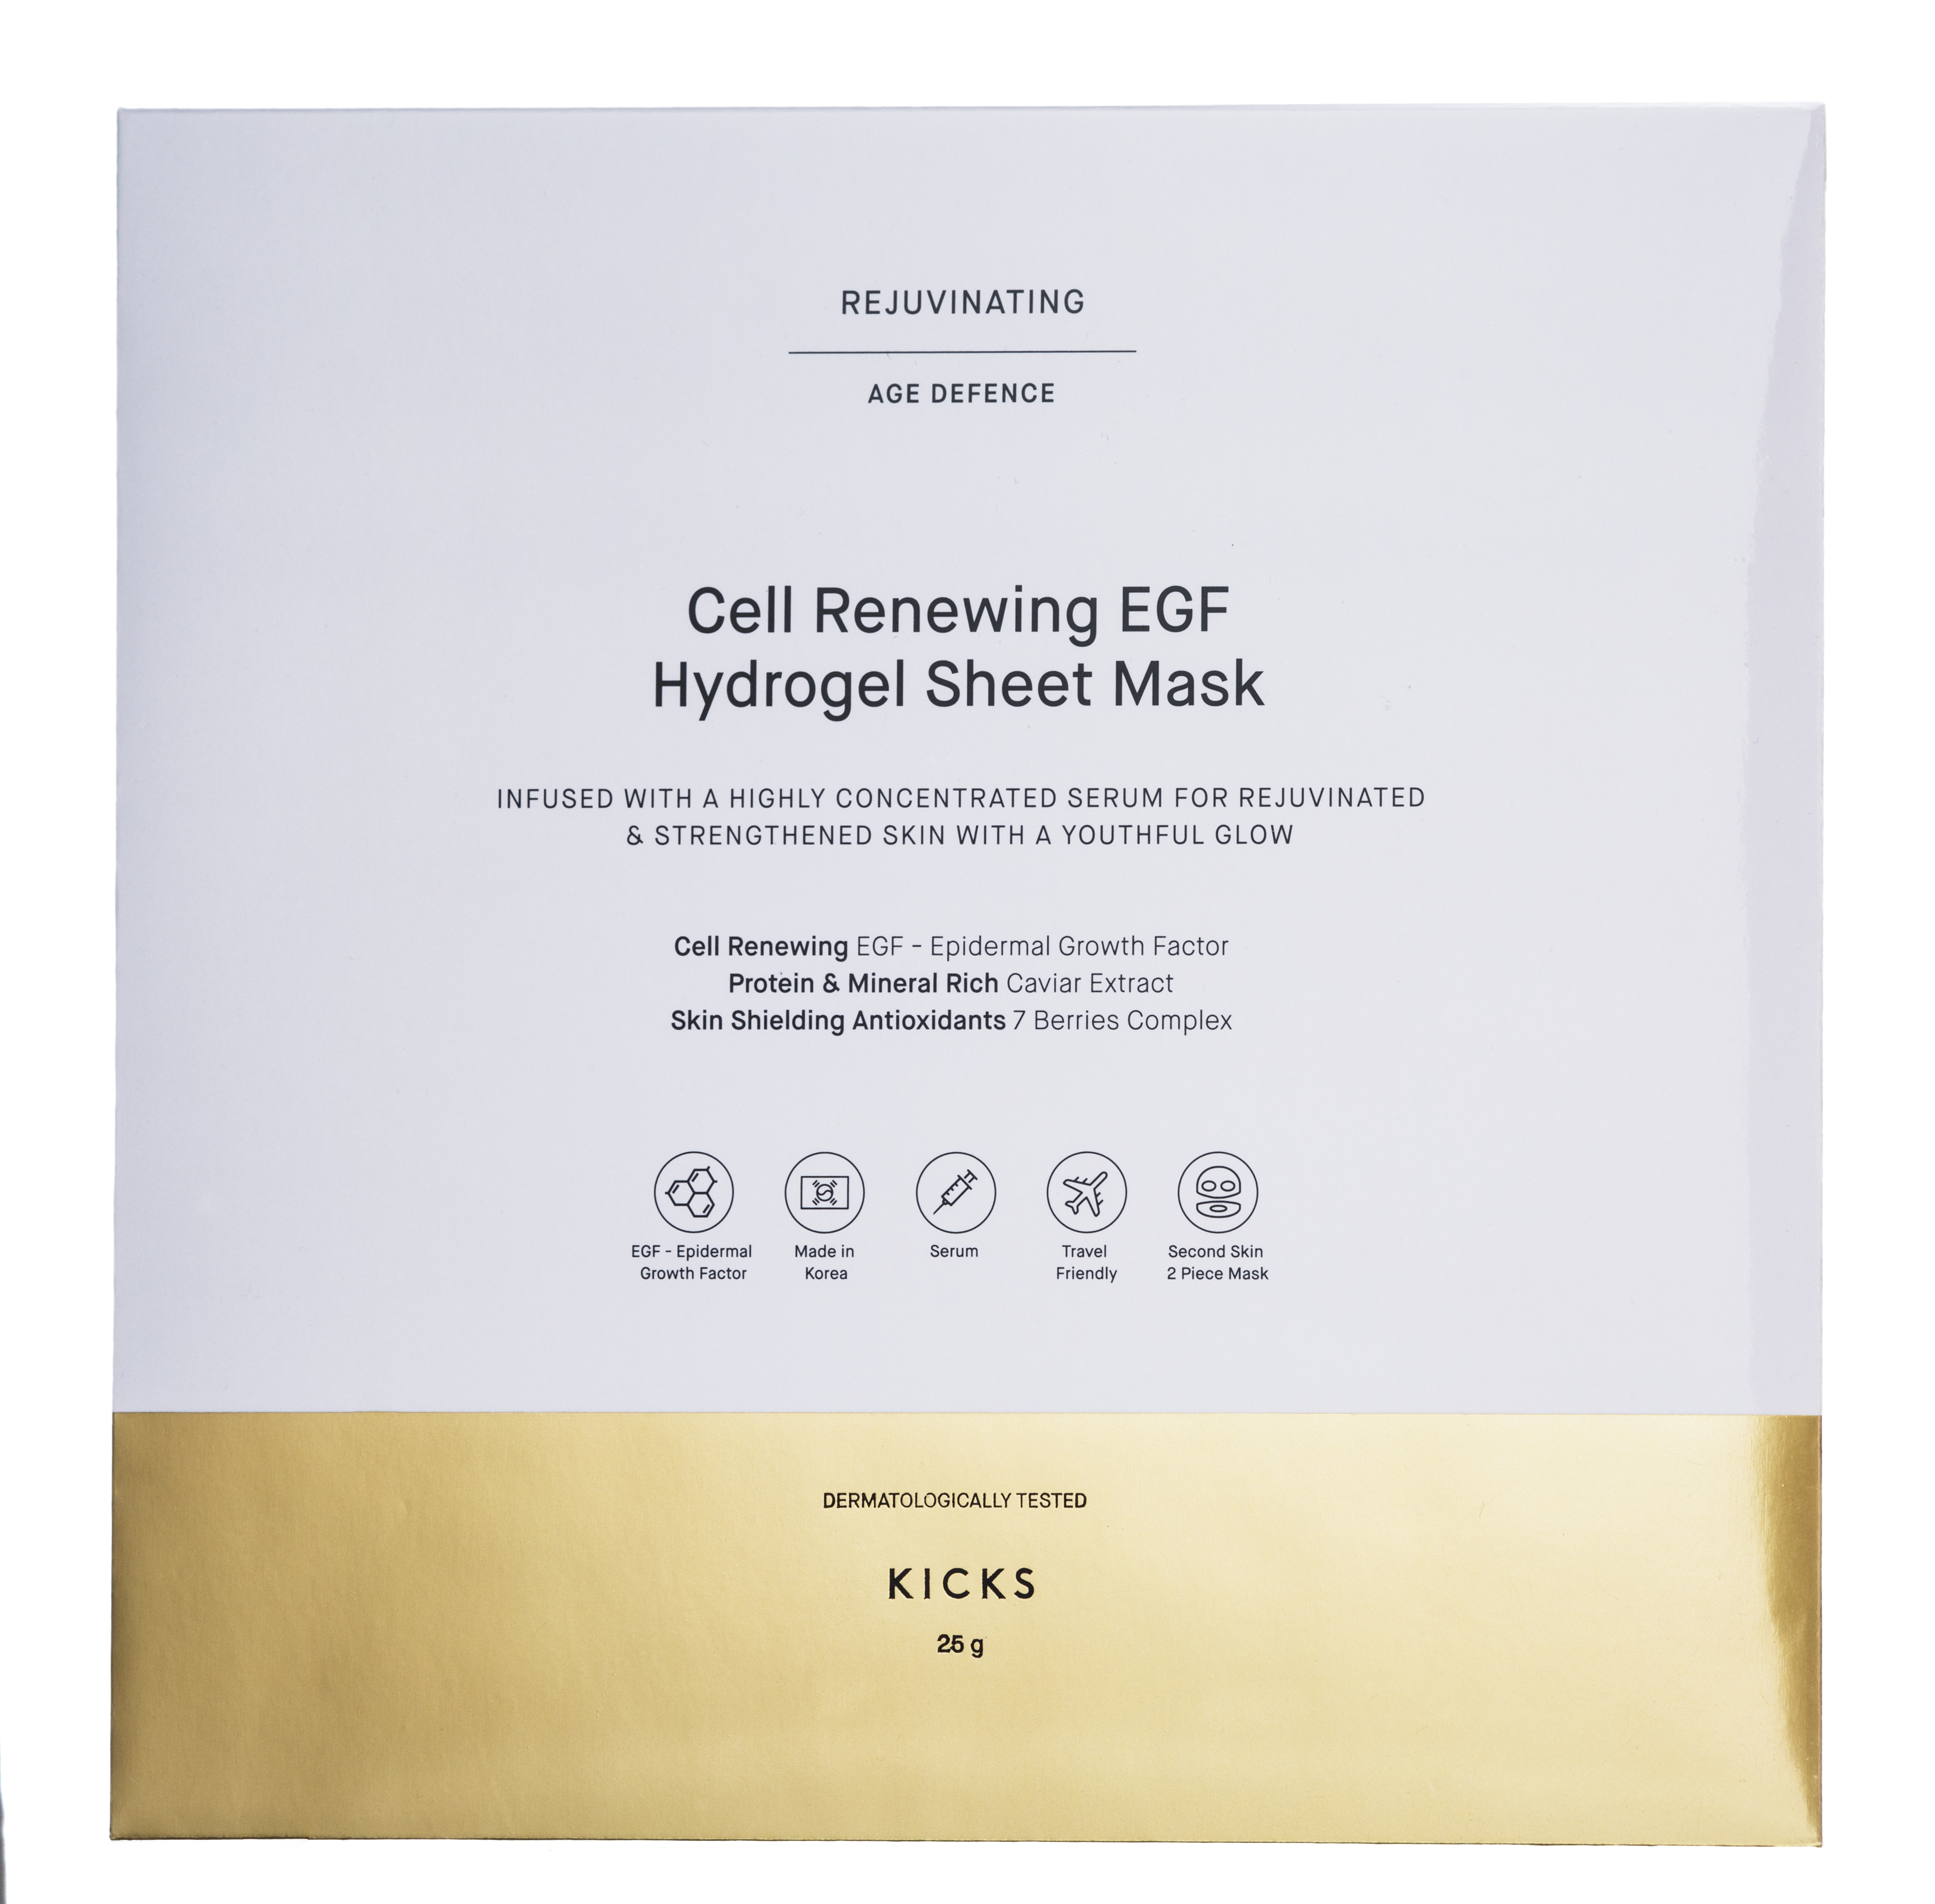 Cell Renewing EGF Hydrogel Sheet Mask